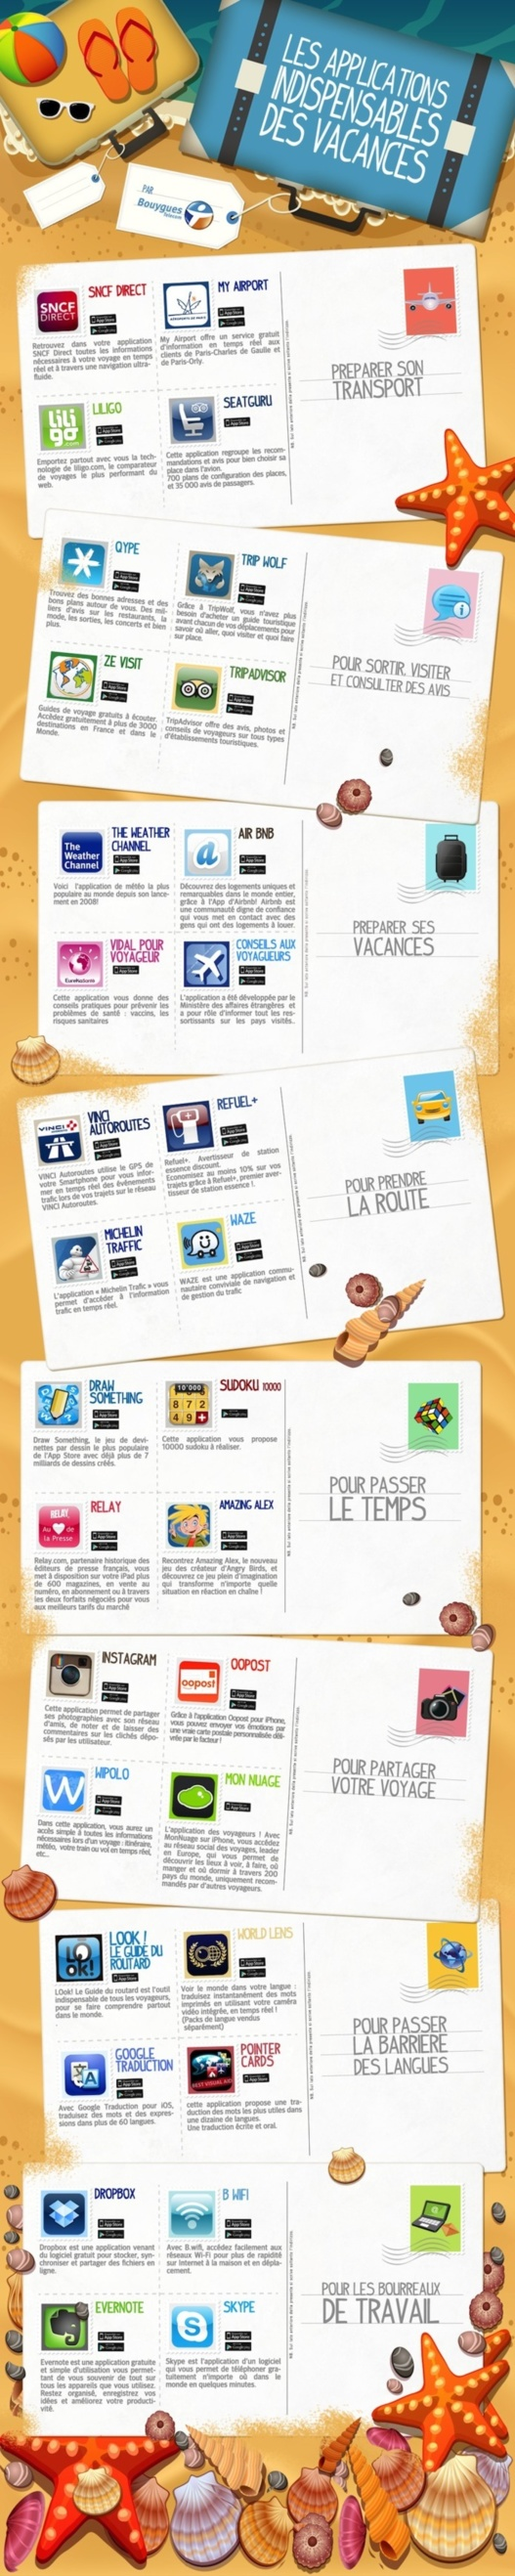 Les applications indispensables de l'été en 1 image